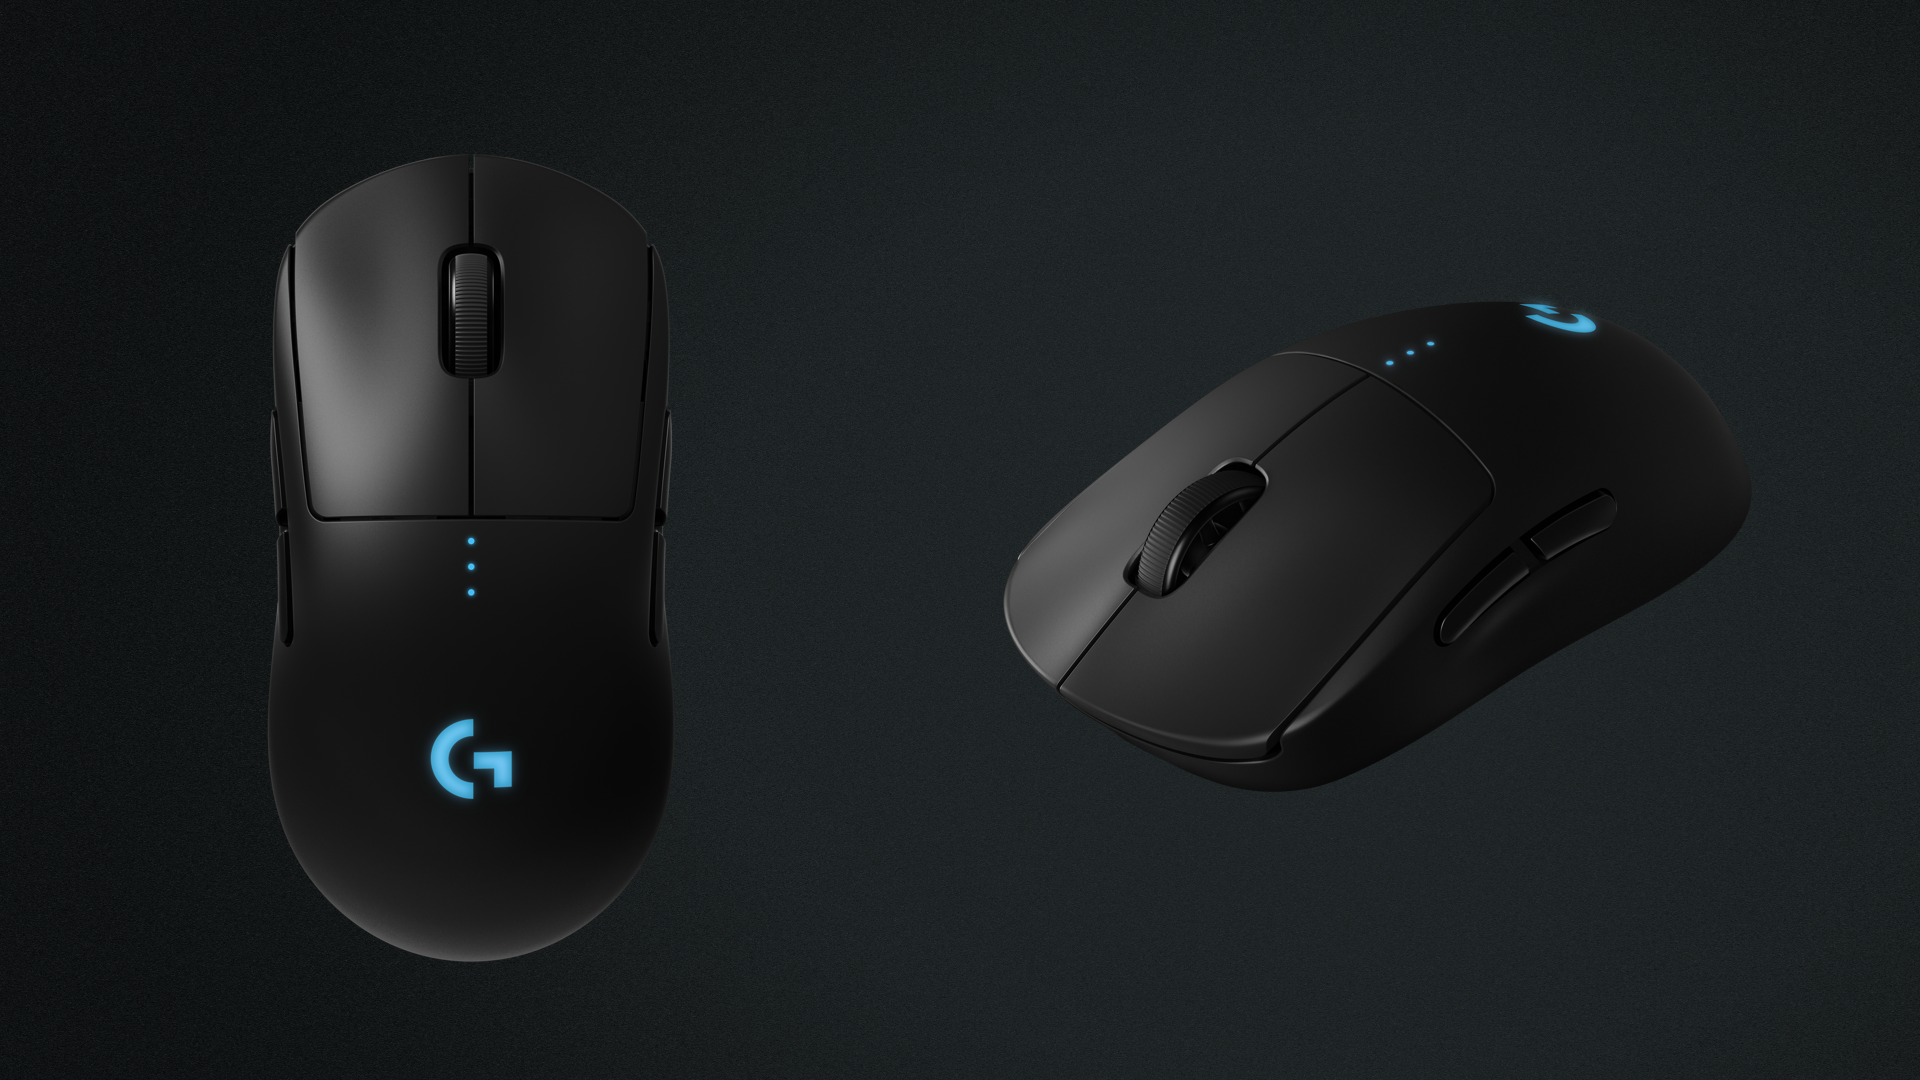 Logitech S New G Pro Wireless Gaming Mouse Could Be Its Best Gaming